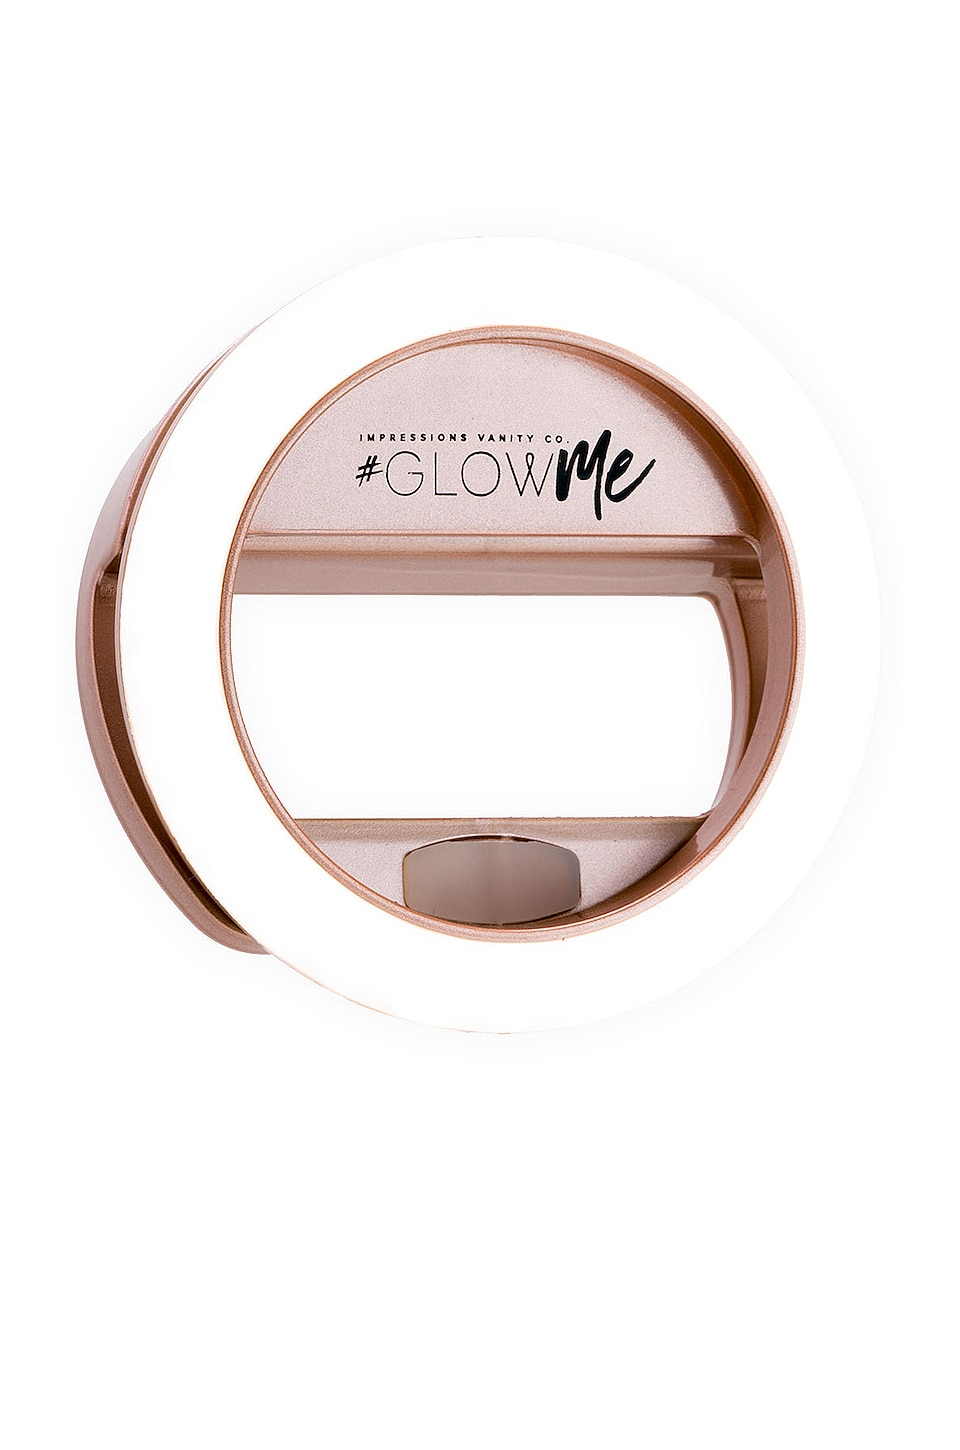 Impressions Vanity GlowMe 2.0 USB Rechargeable LED Selfie Ring Light in Rose Gold